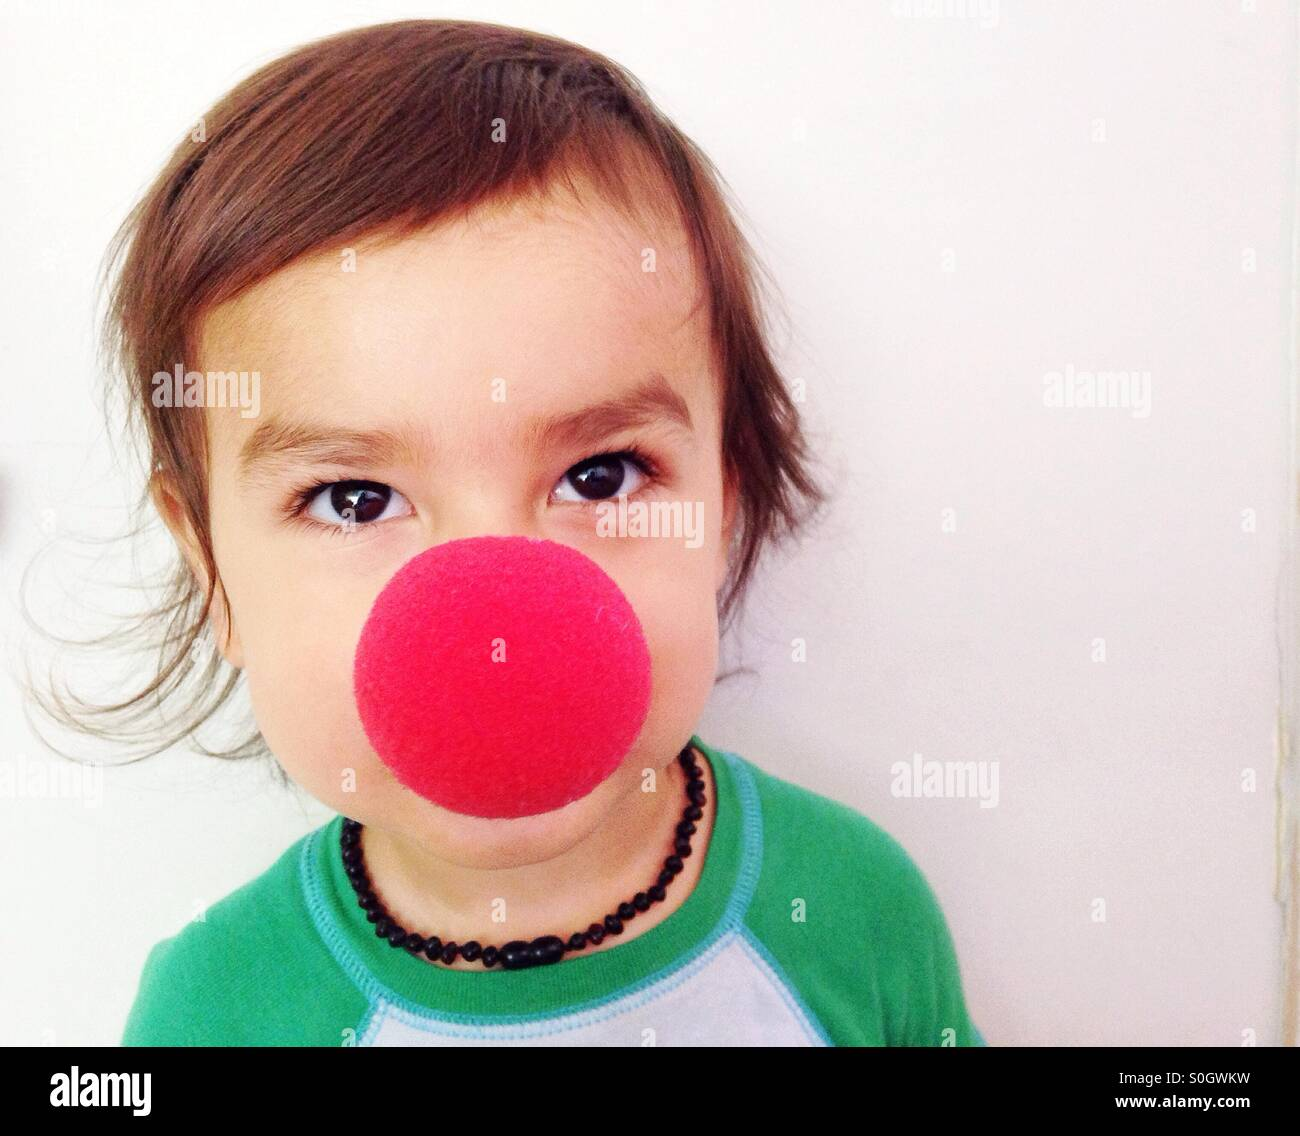 Cute toddler avec nez de clown rouge Photo Stock